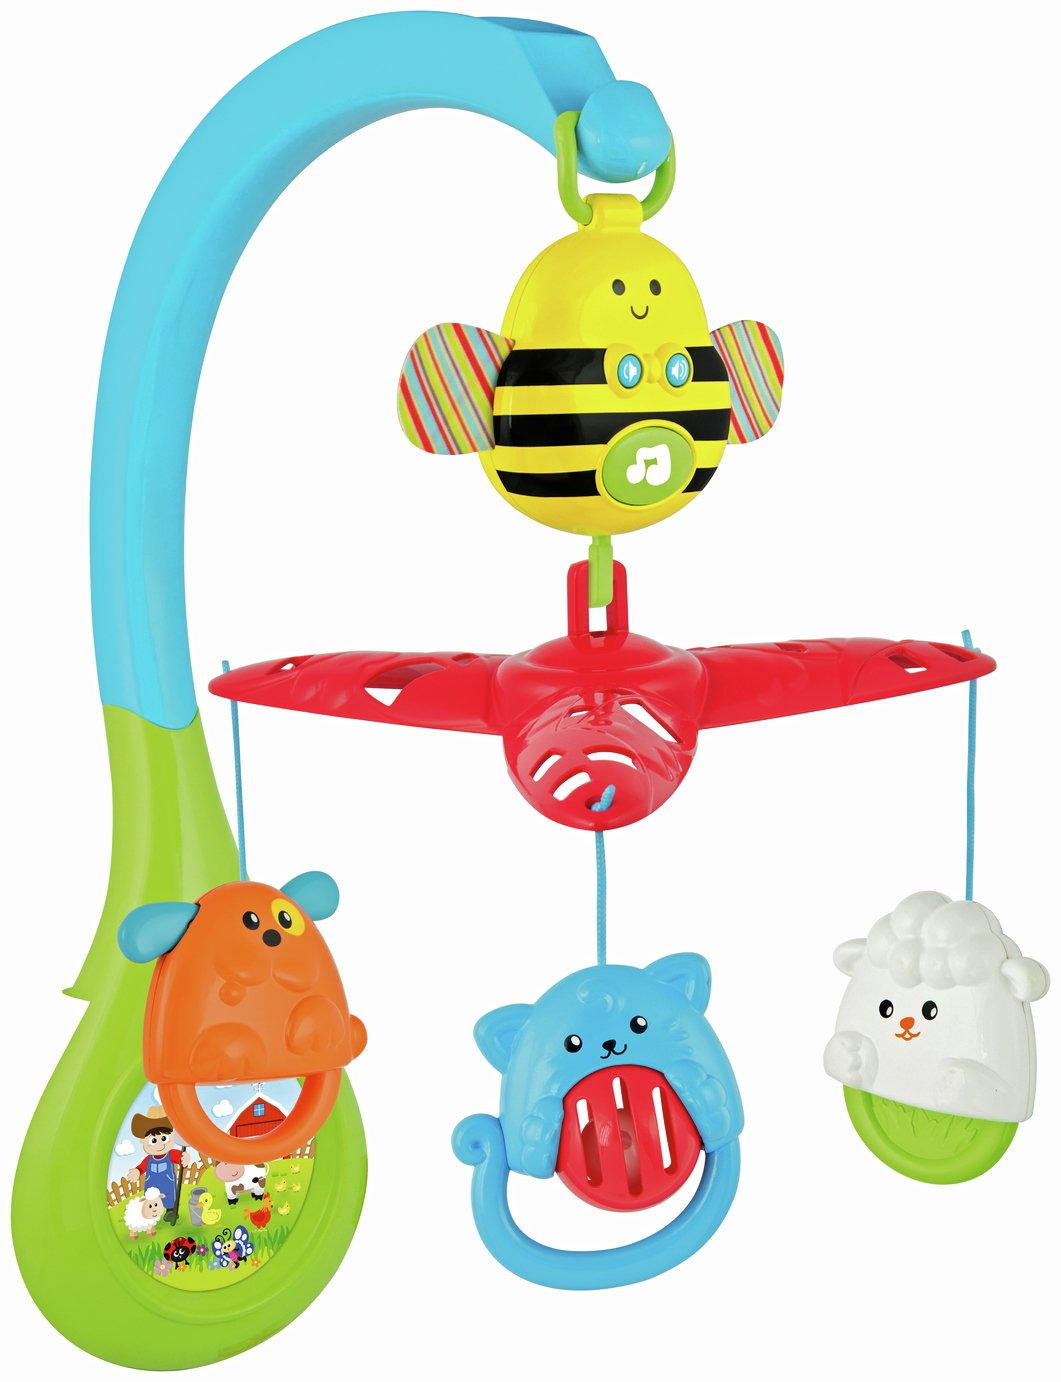 Image of Chad Valley Baby Rotating Musical Mobile